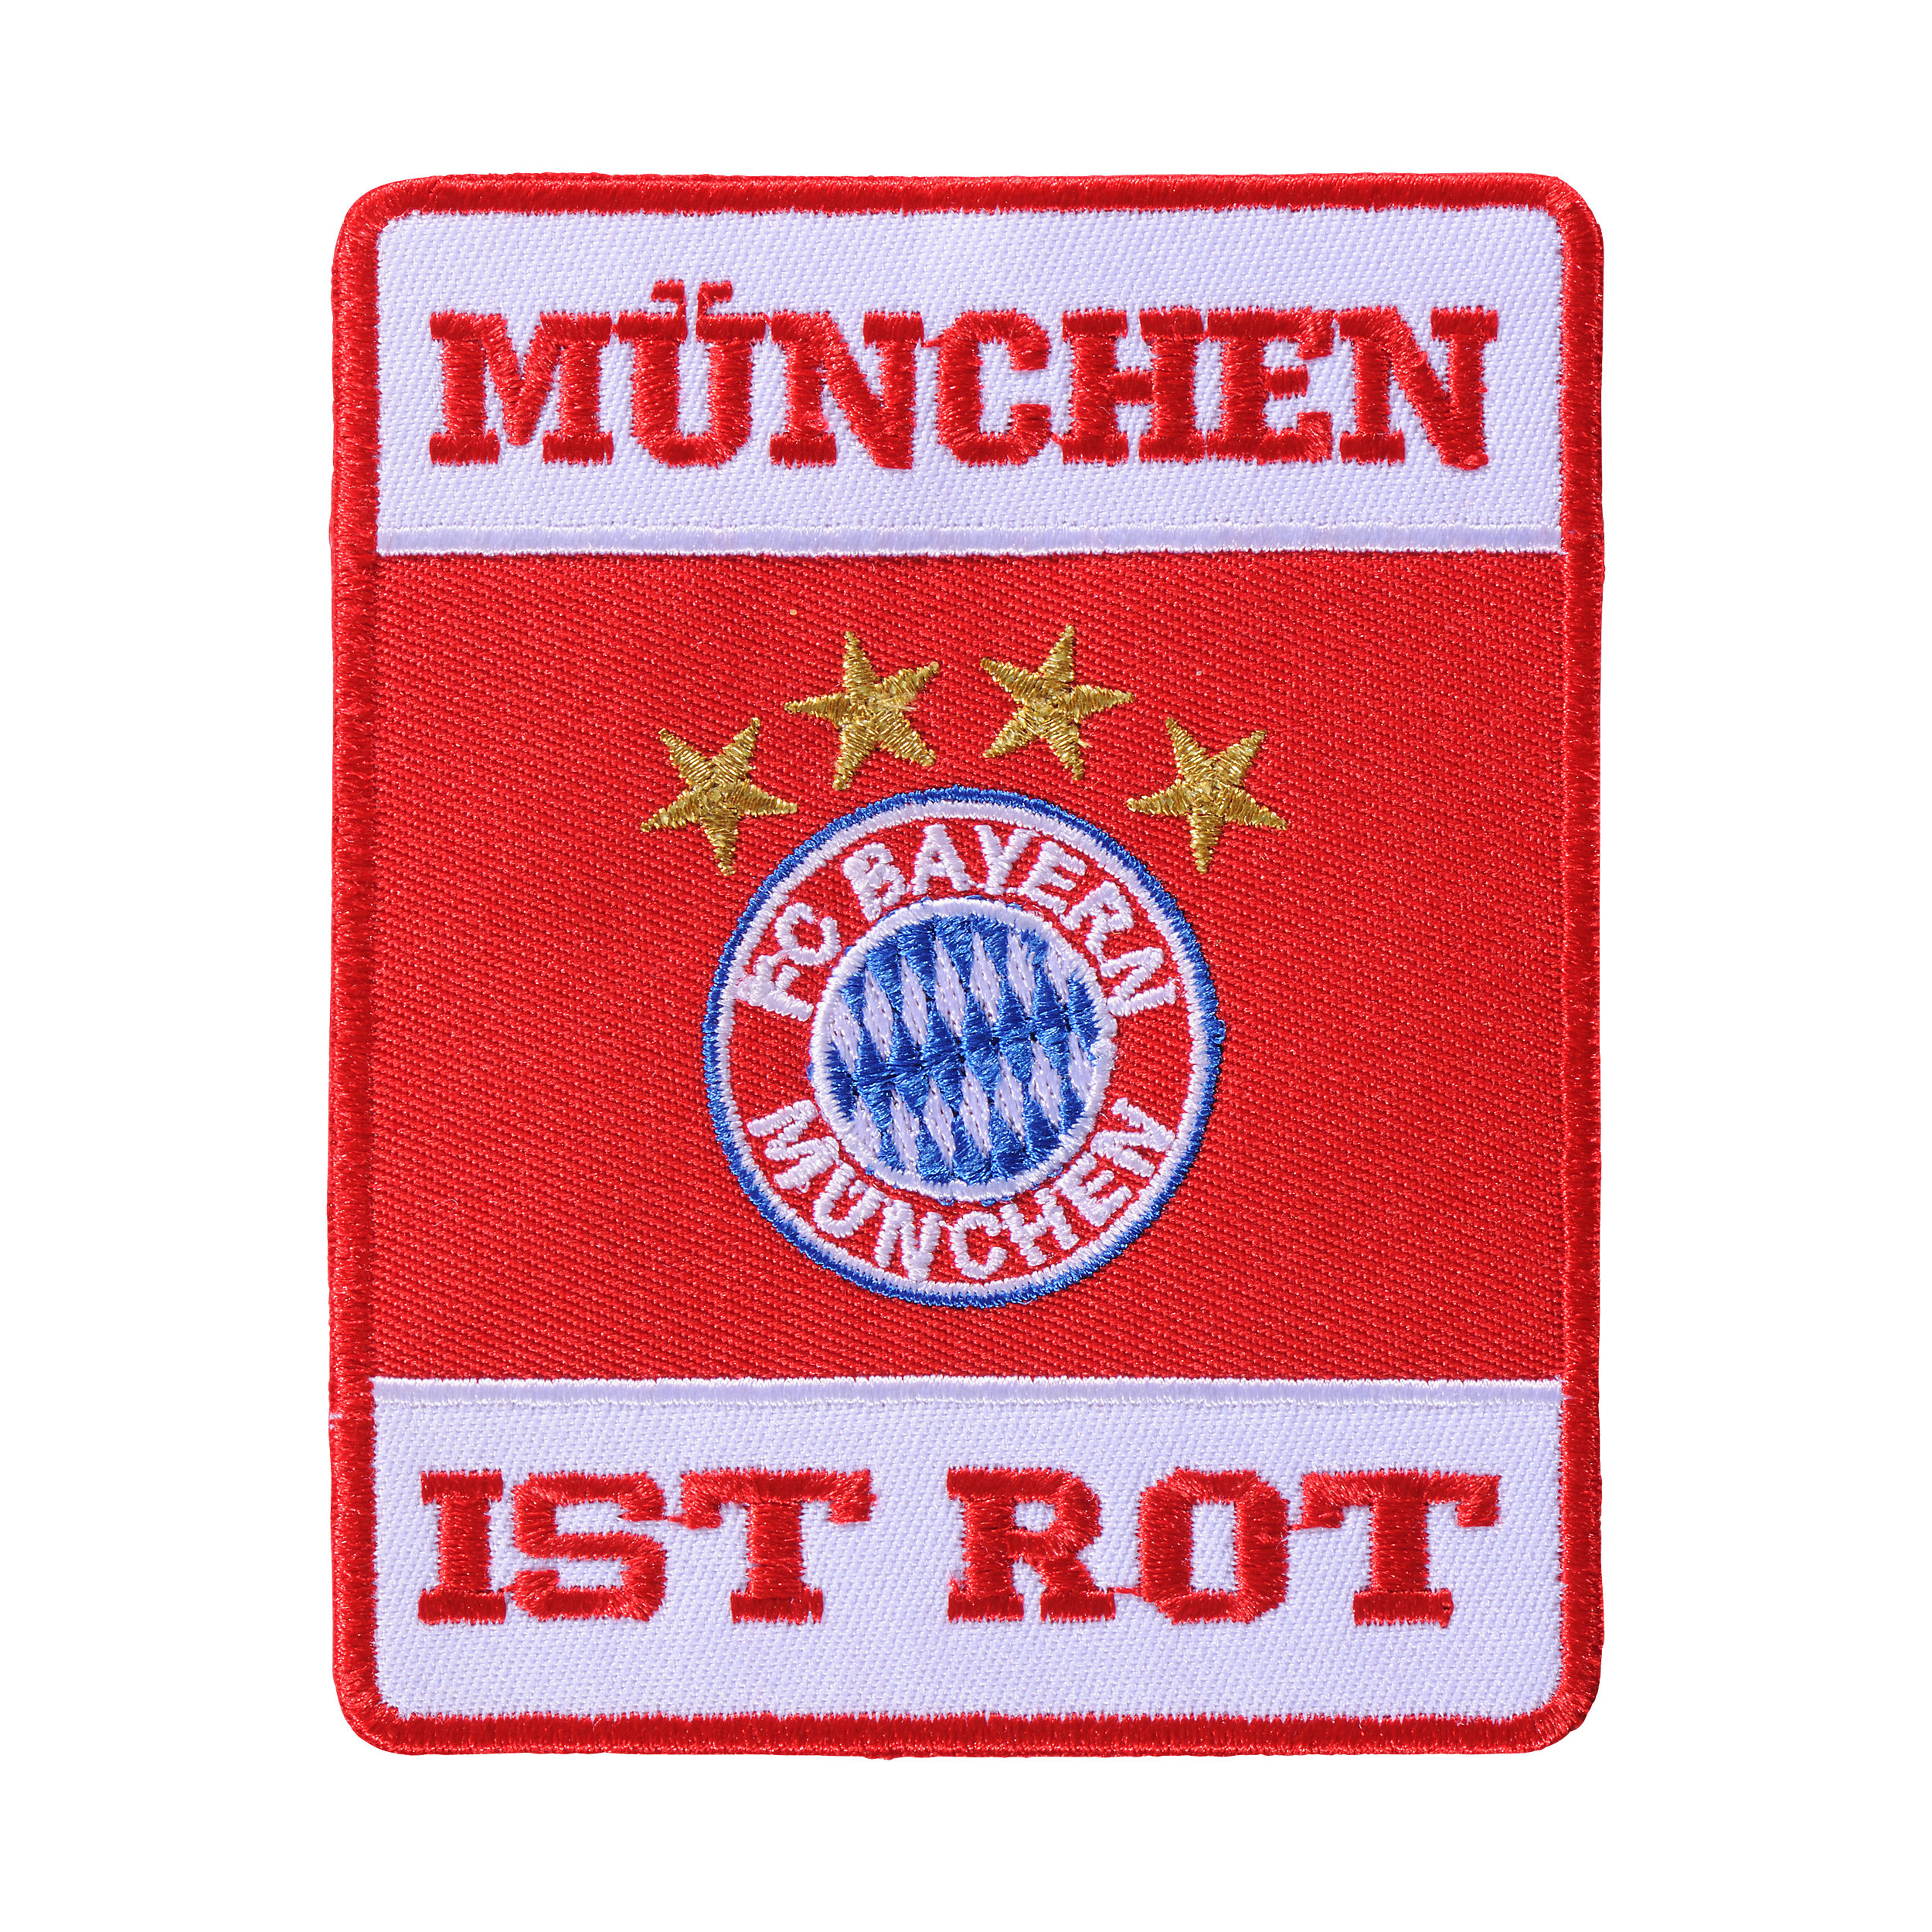 aufn her logo gro fc bayern m nchen fanblog. Black Bedroom Furniture Sets. Home Design Ideas